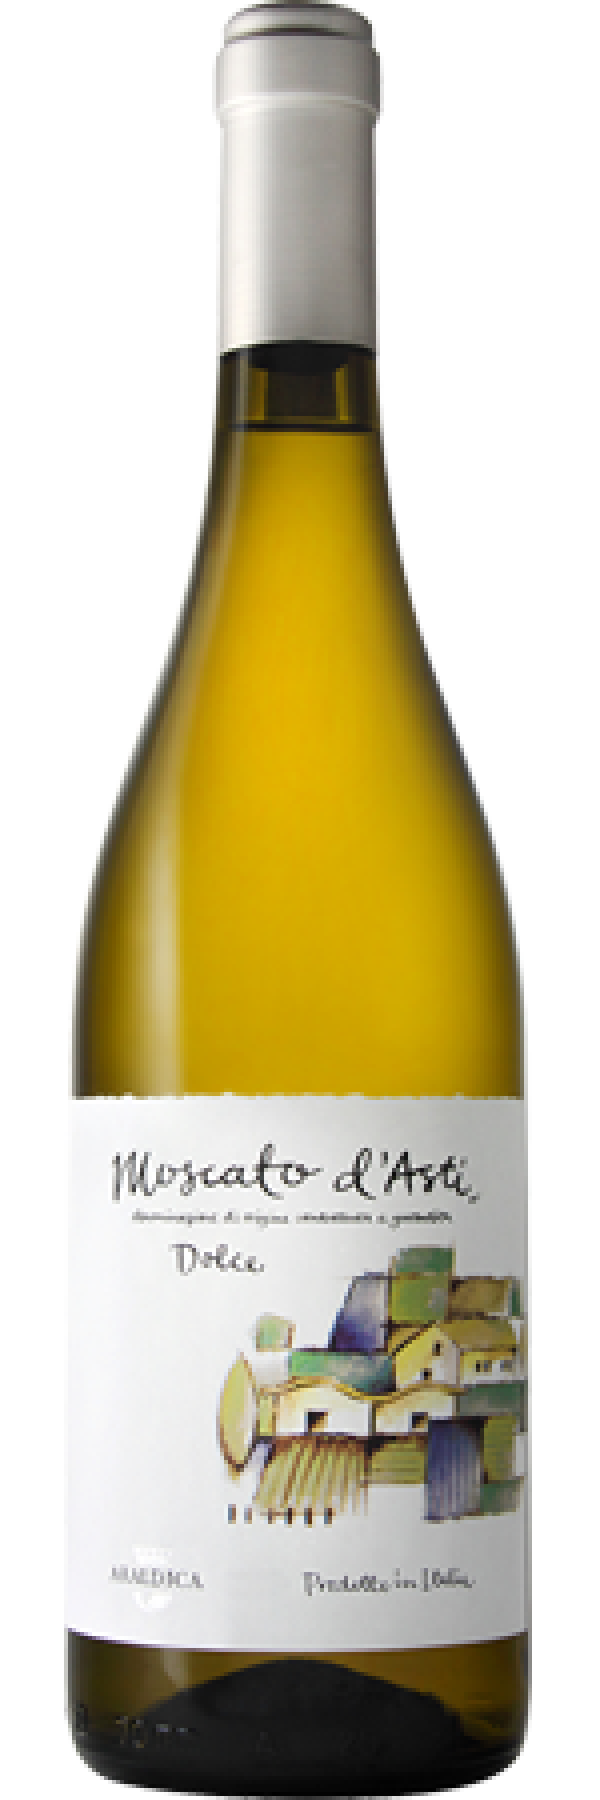 Moscato d'Asti Dolce